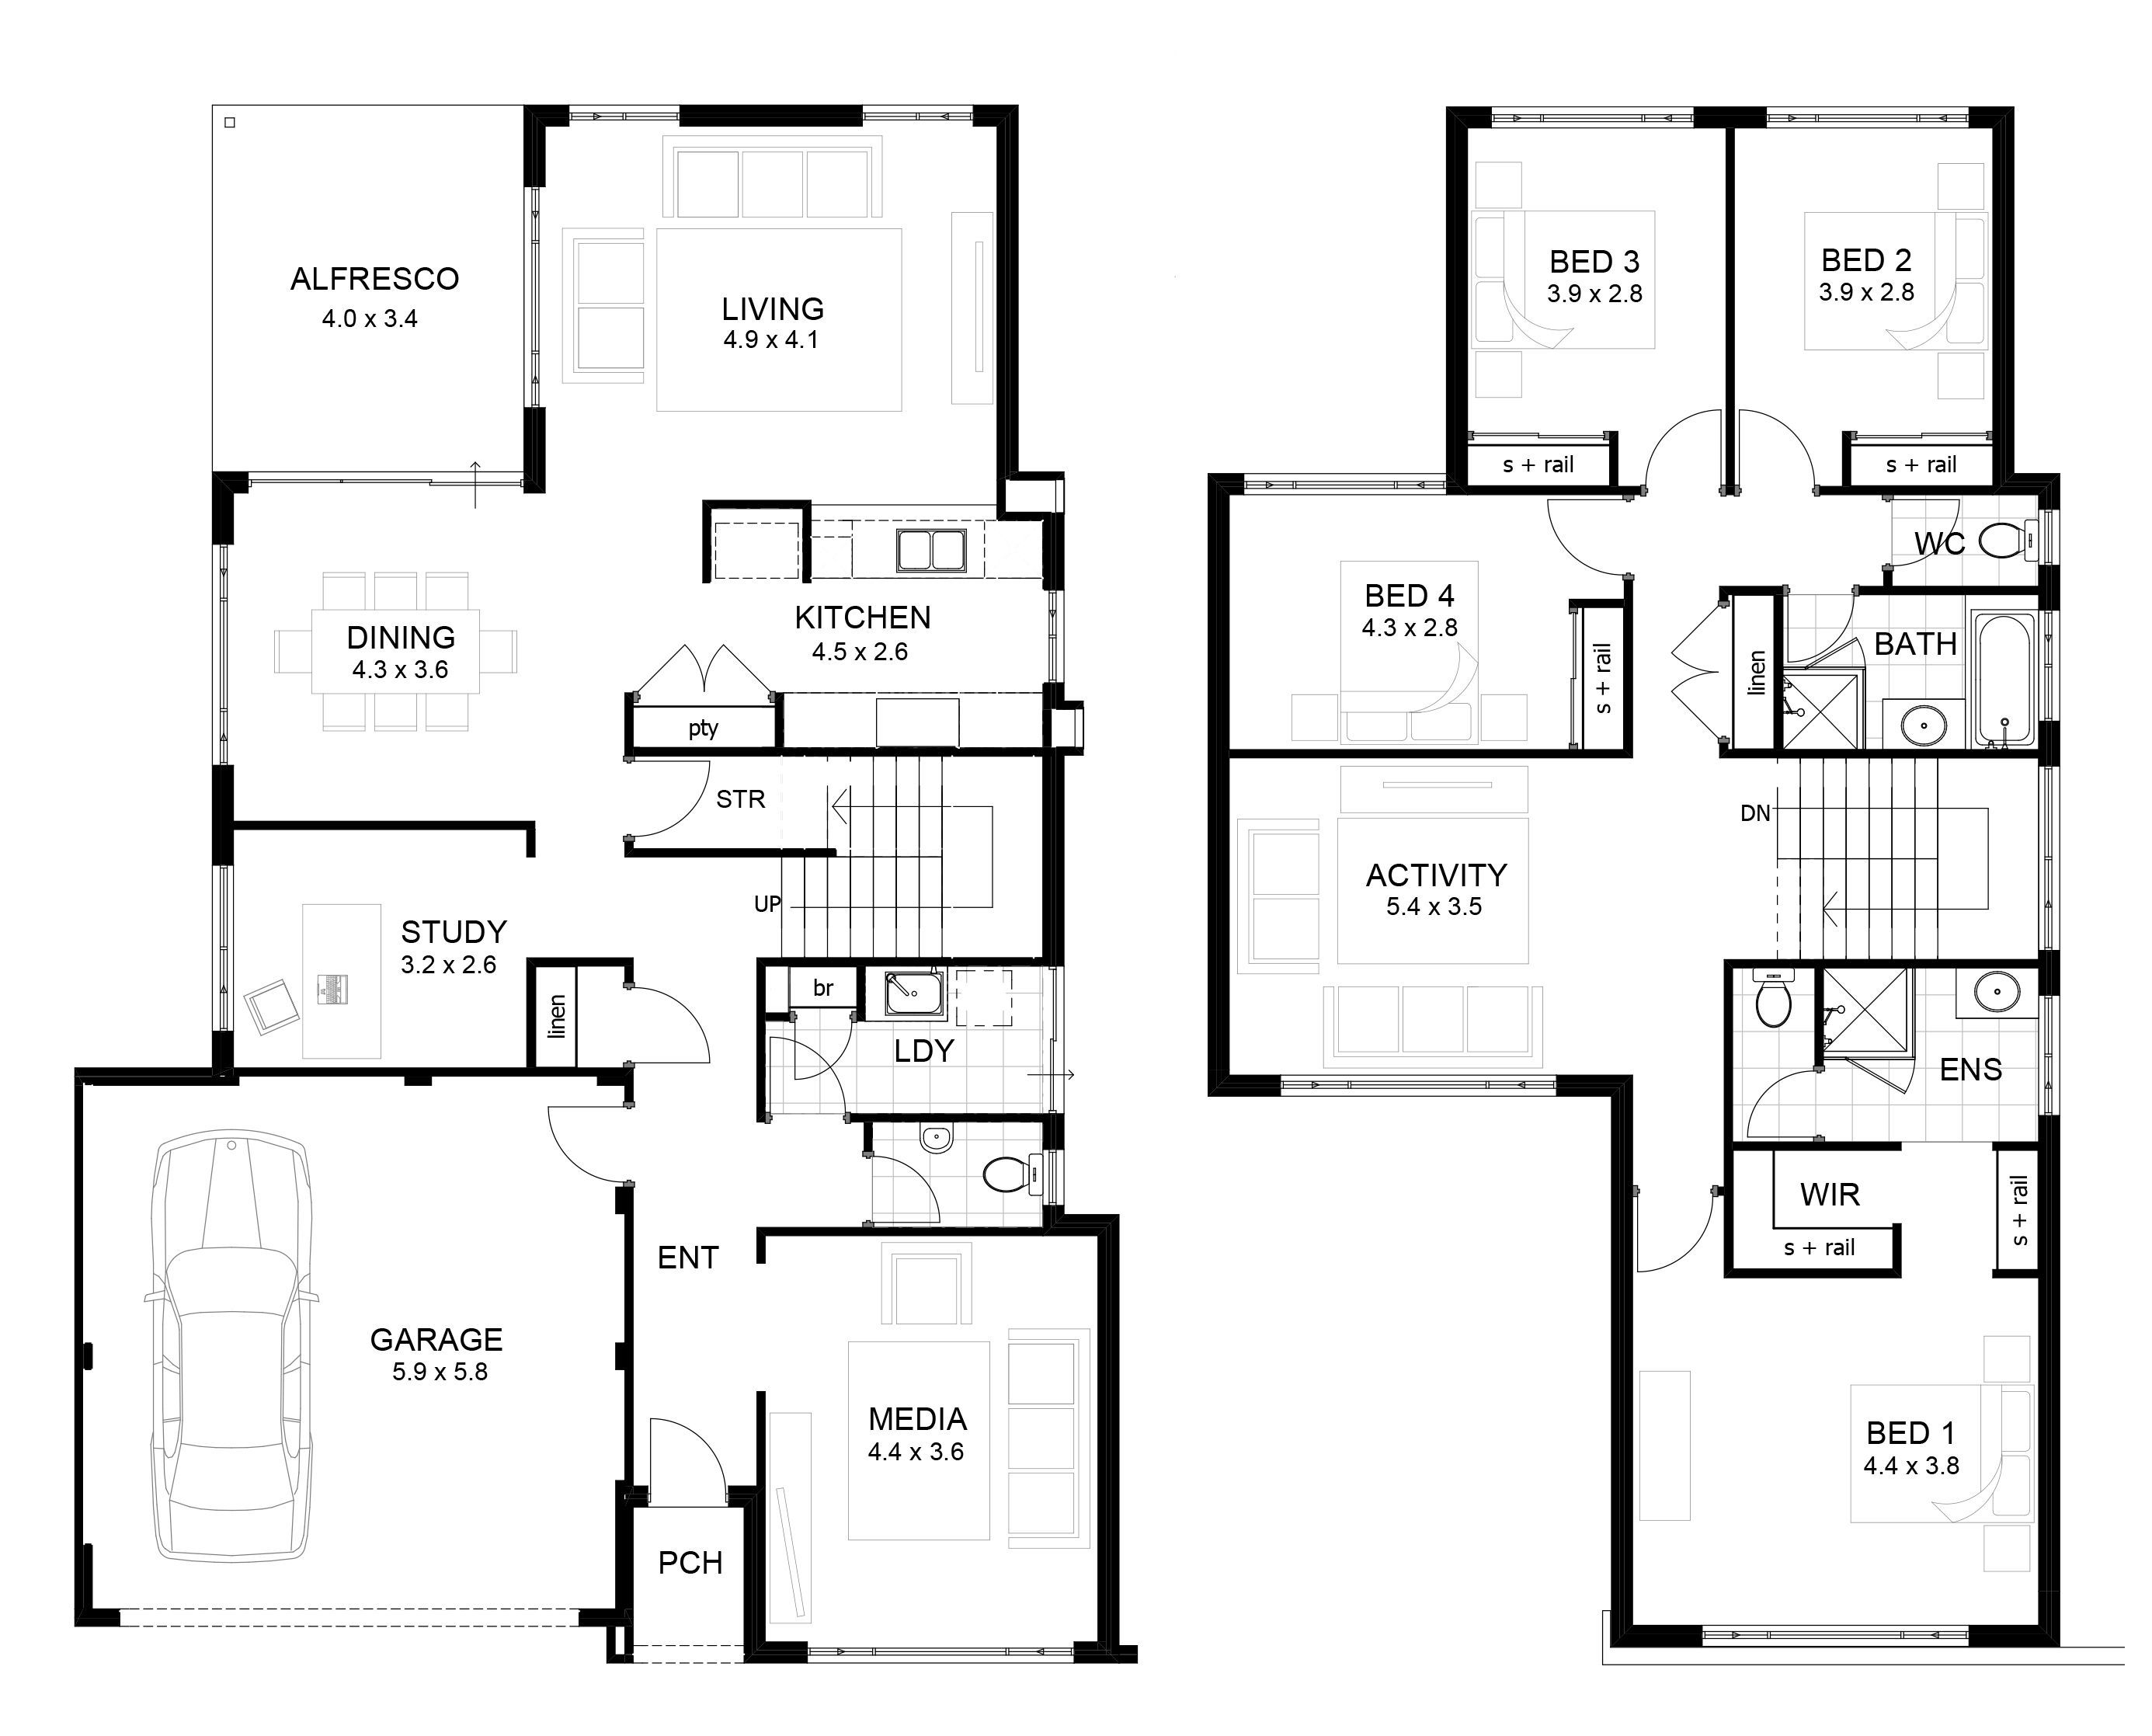 Home Builders Display Homes Designs Perth Apg Homes Mansion Floor Plan New House Plans House Plans